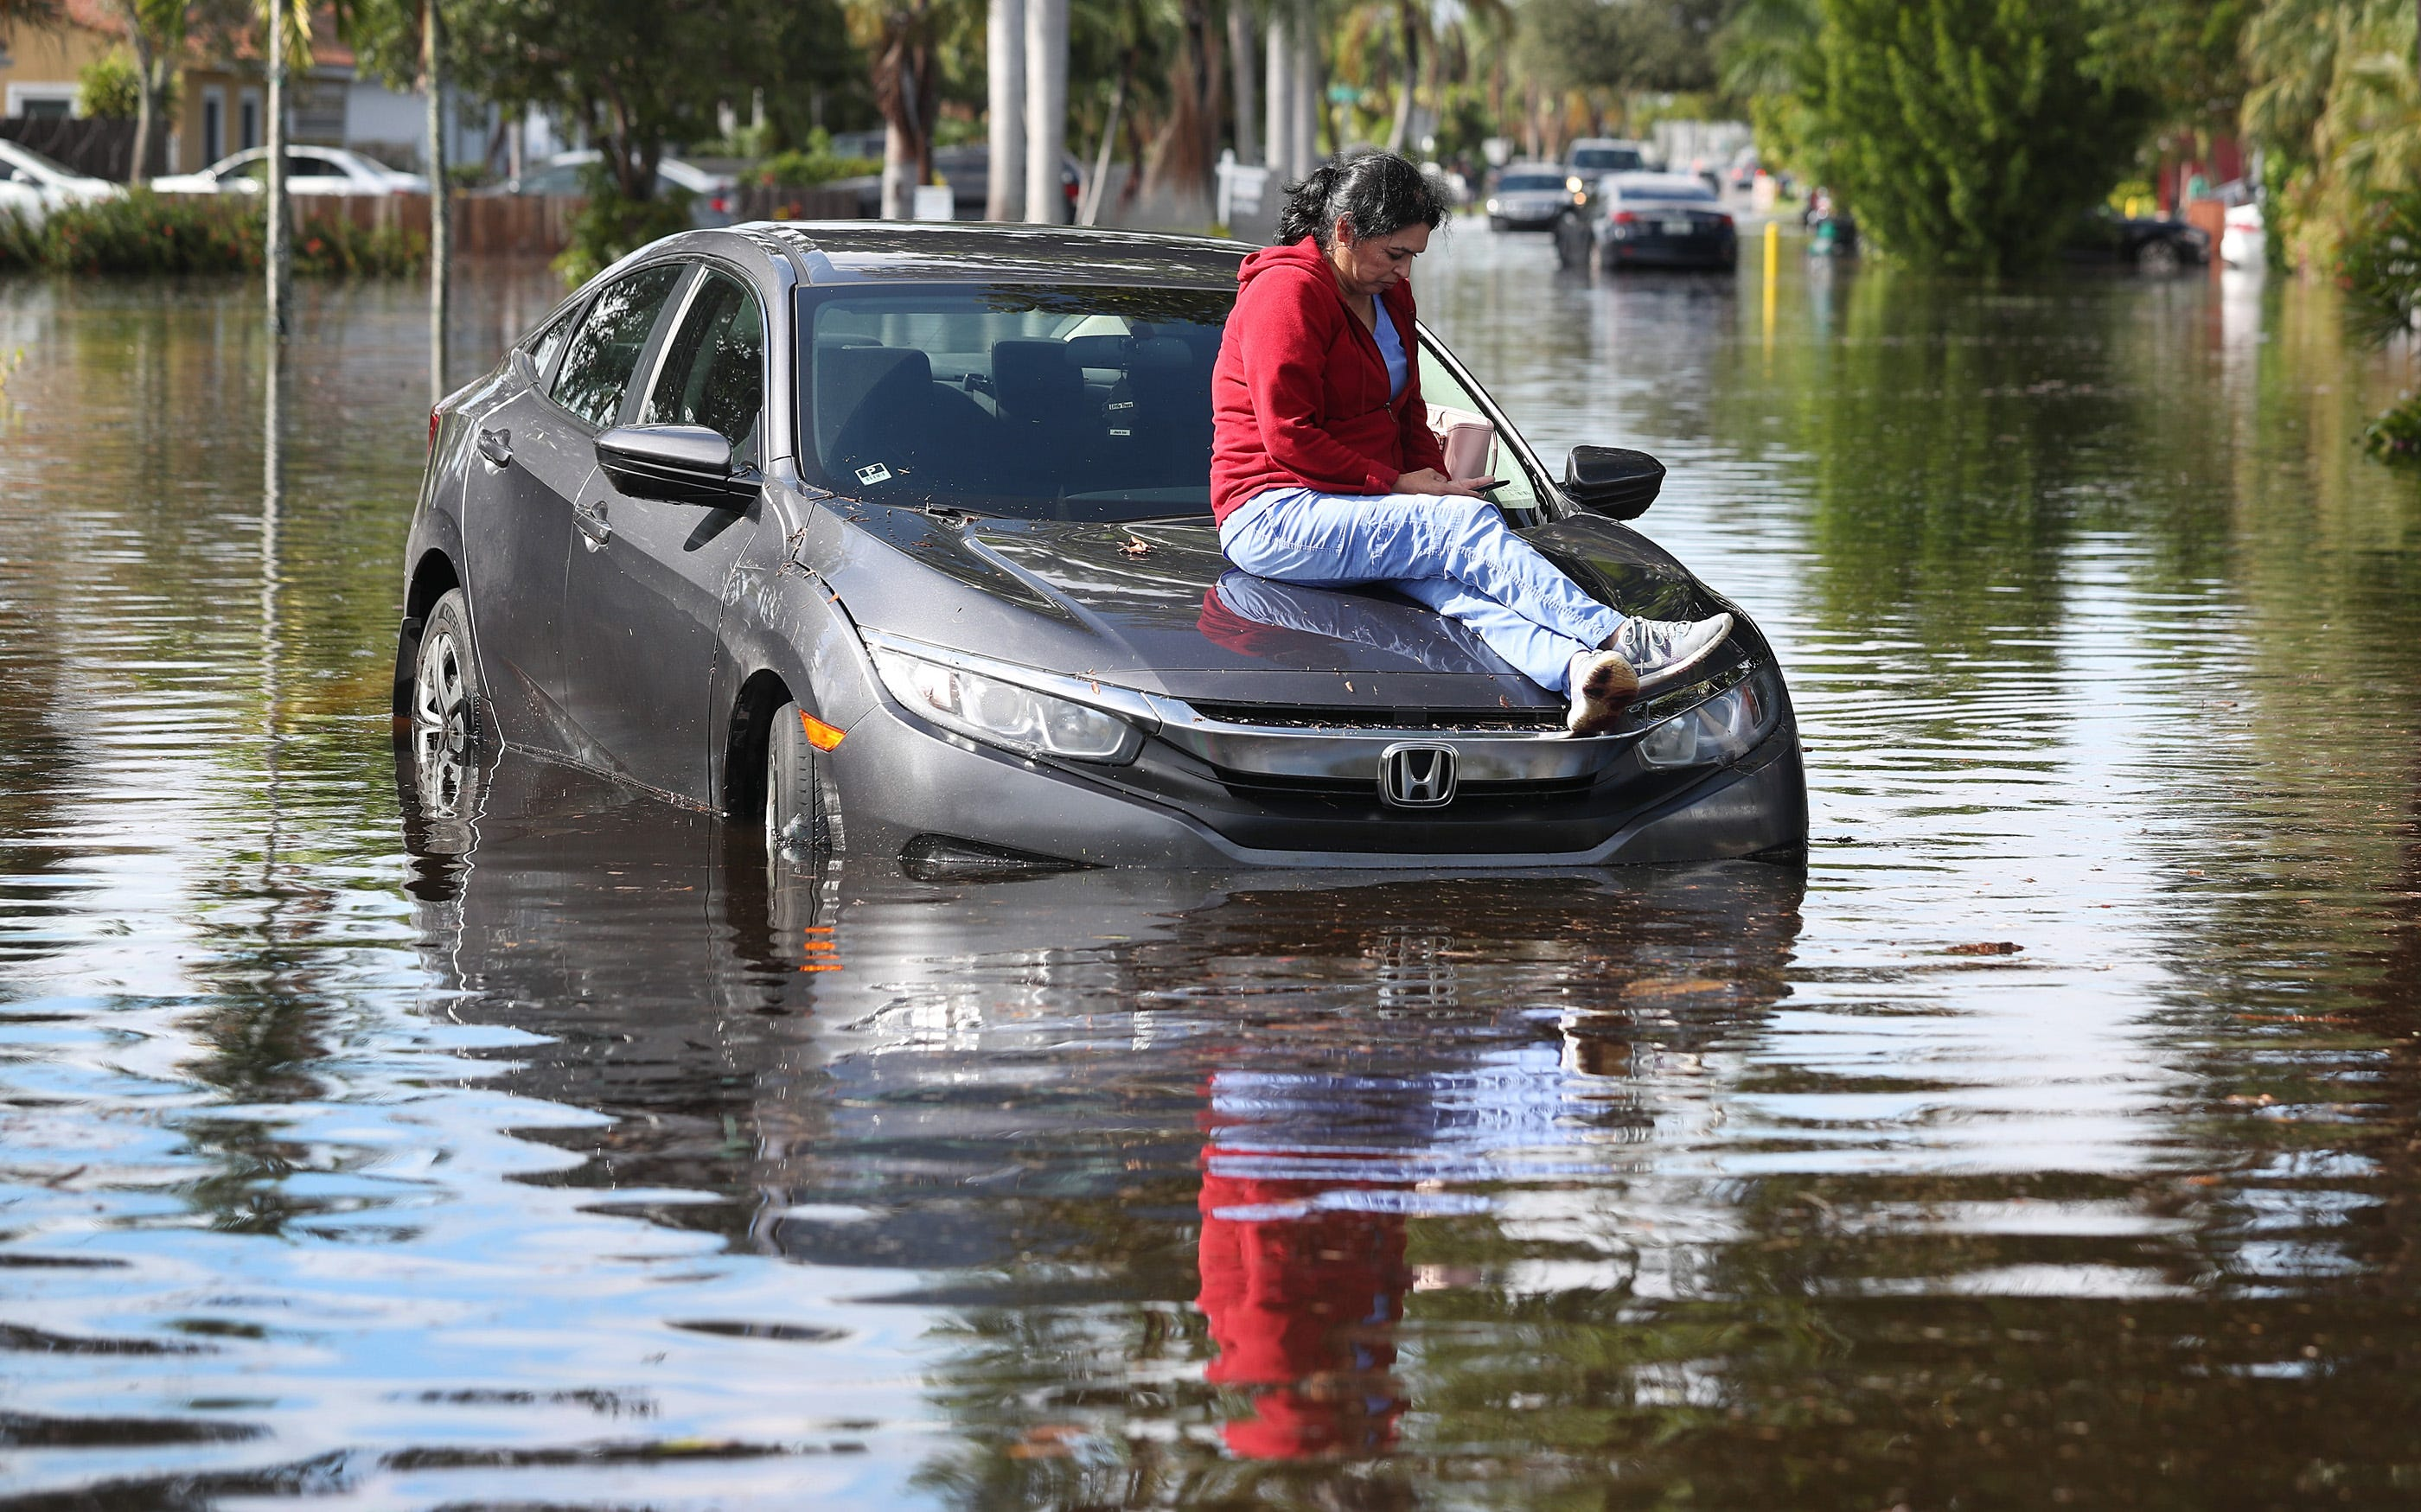 Stephanie Soto sits on the hood of her car after it stalled in flood waters as she was driving on Dec. 23, 2019 in Hollywood, Fla. The area received up to 12 inches of rain during an overnight storm that hit the area causing flooding that even forced Fort Lauderdale-Hollywood International Airport to shut down flight operations early Monday morning.